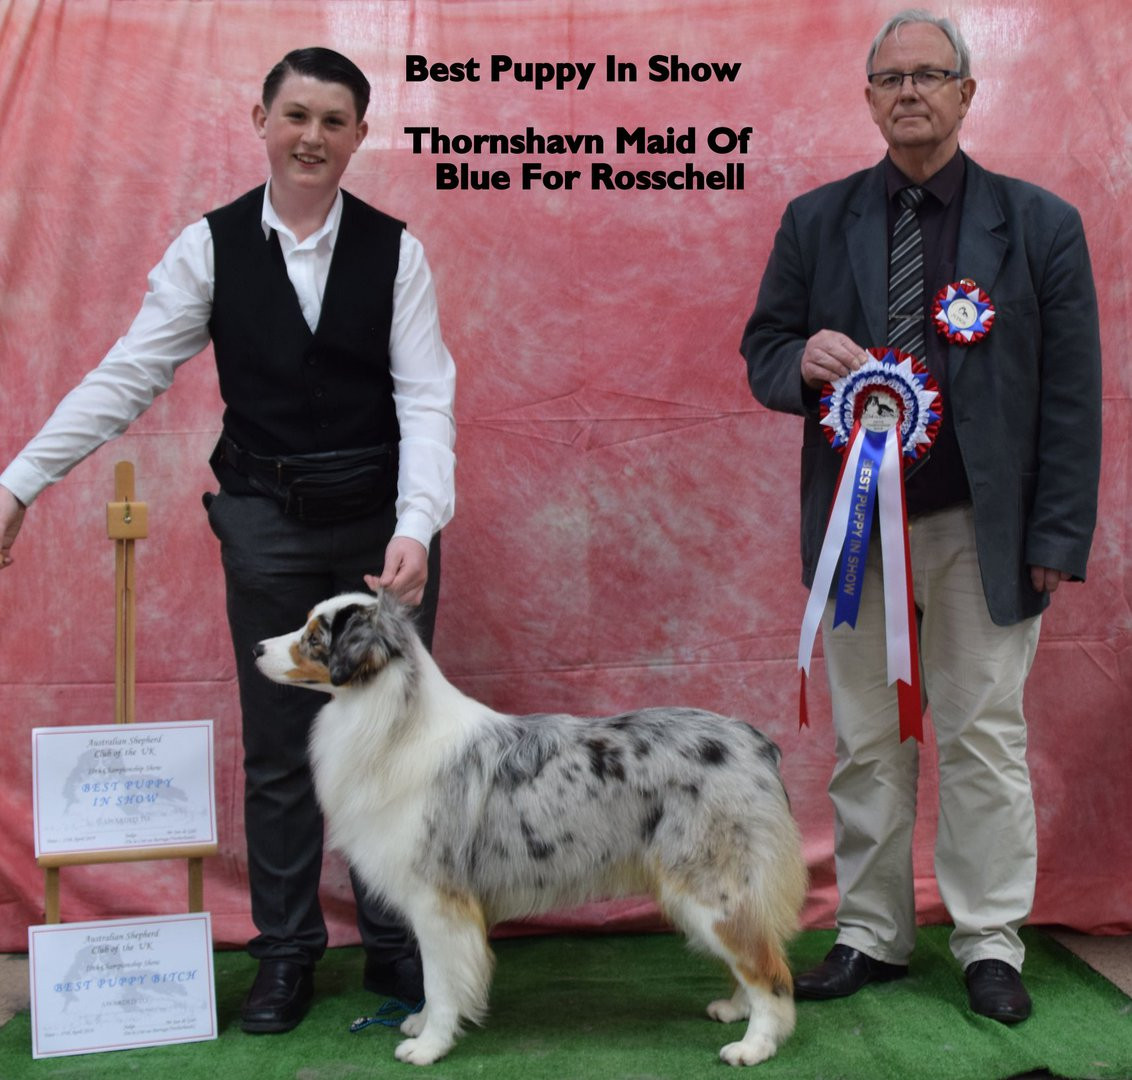 Best Puppy in Show